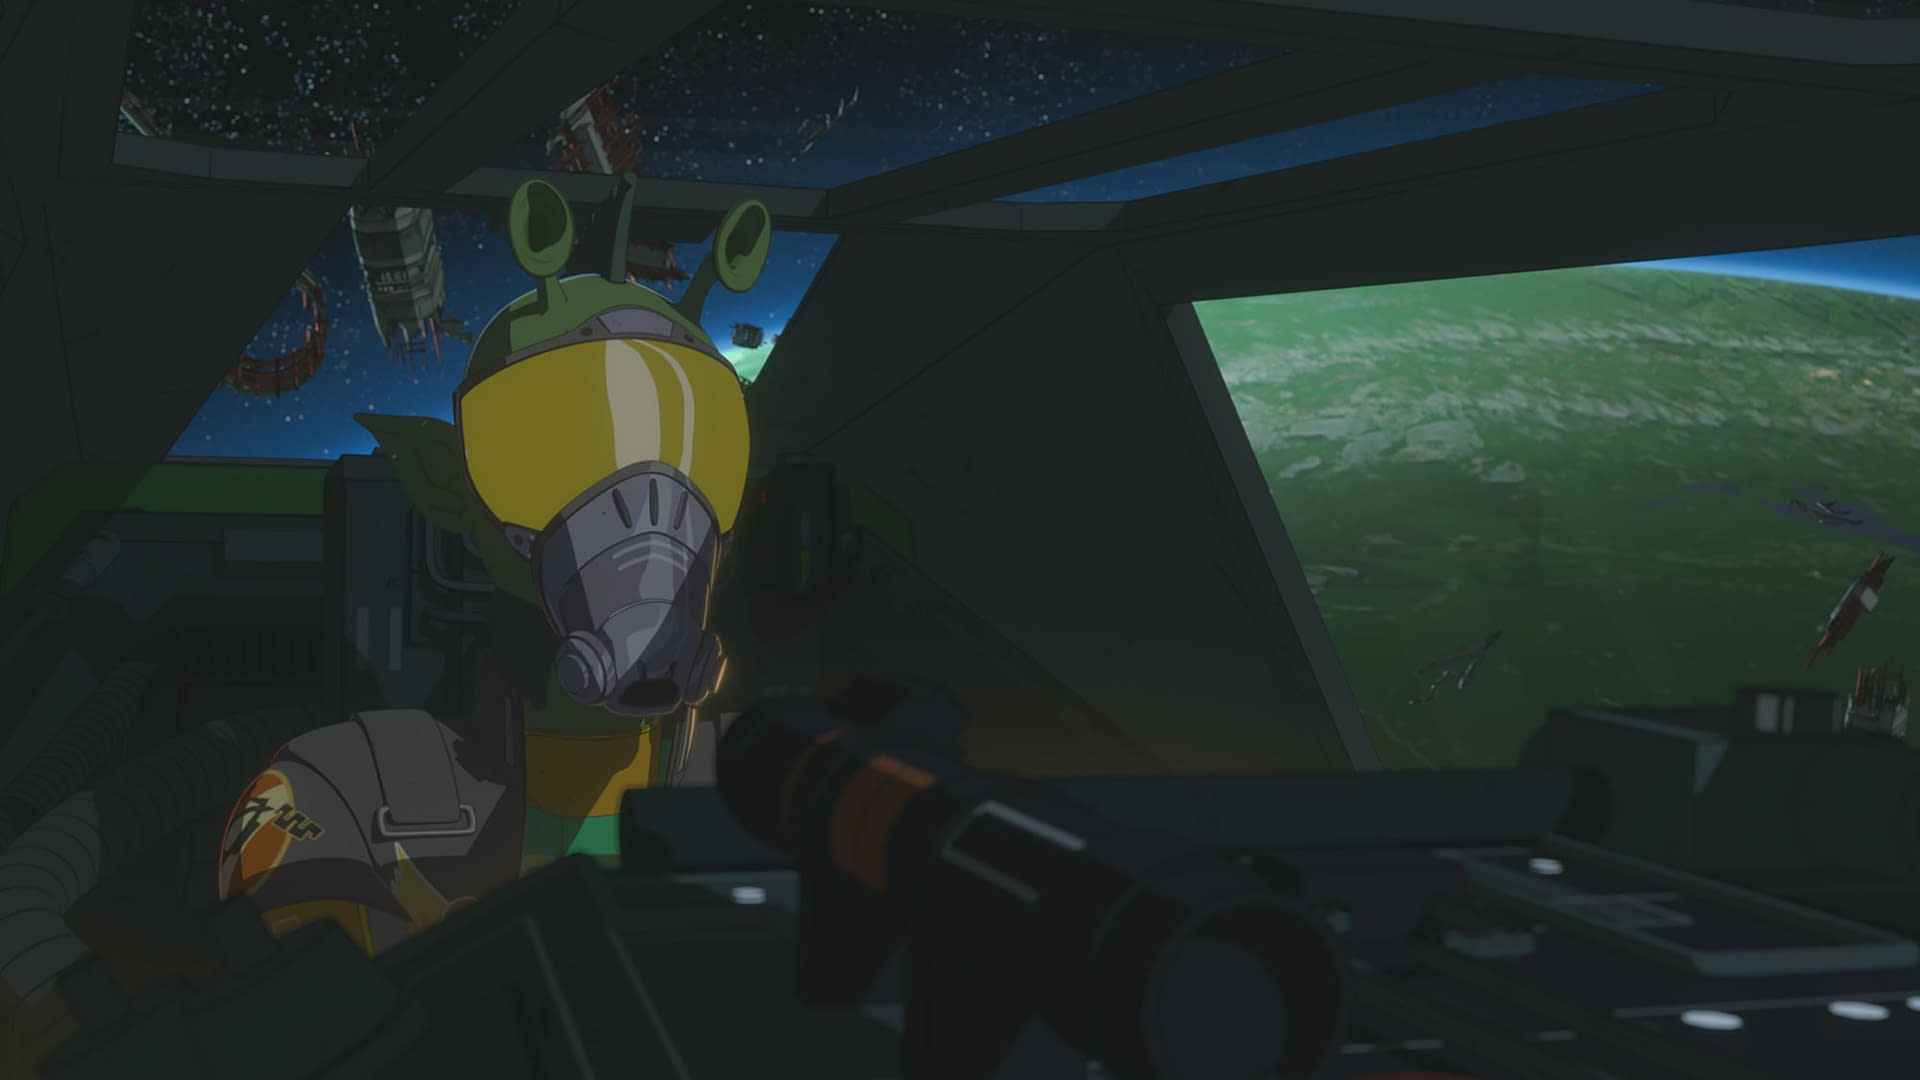 """""""Star Wars Resistance"""" Season 2 Episode 2 """"A Quick Salvage Run"""" Proves Anything But [PREVIEW]"""